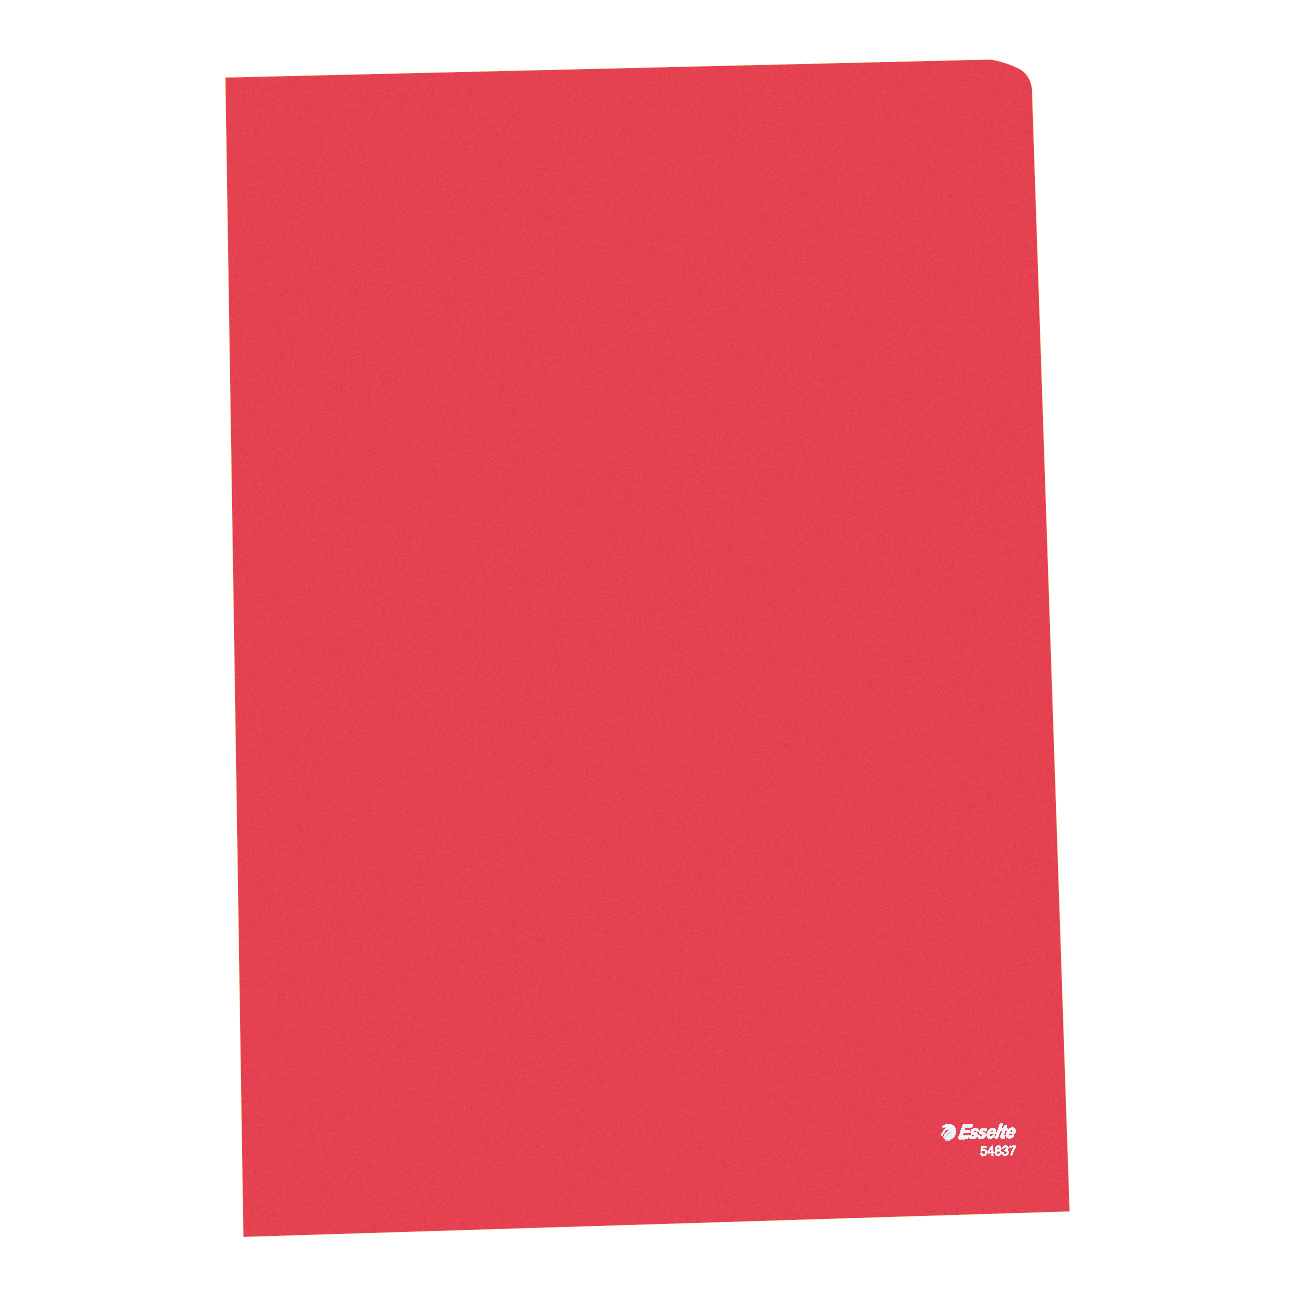 Esselte Copy-safe Folder Plastic Cut Flush A4 Red Ref 54833/54834 Pack 100